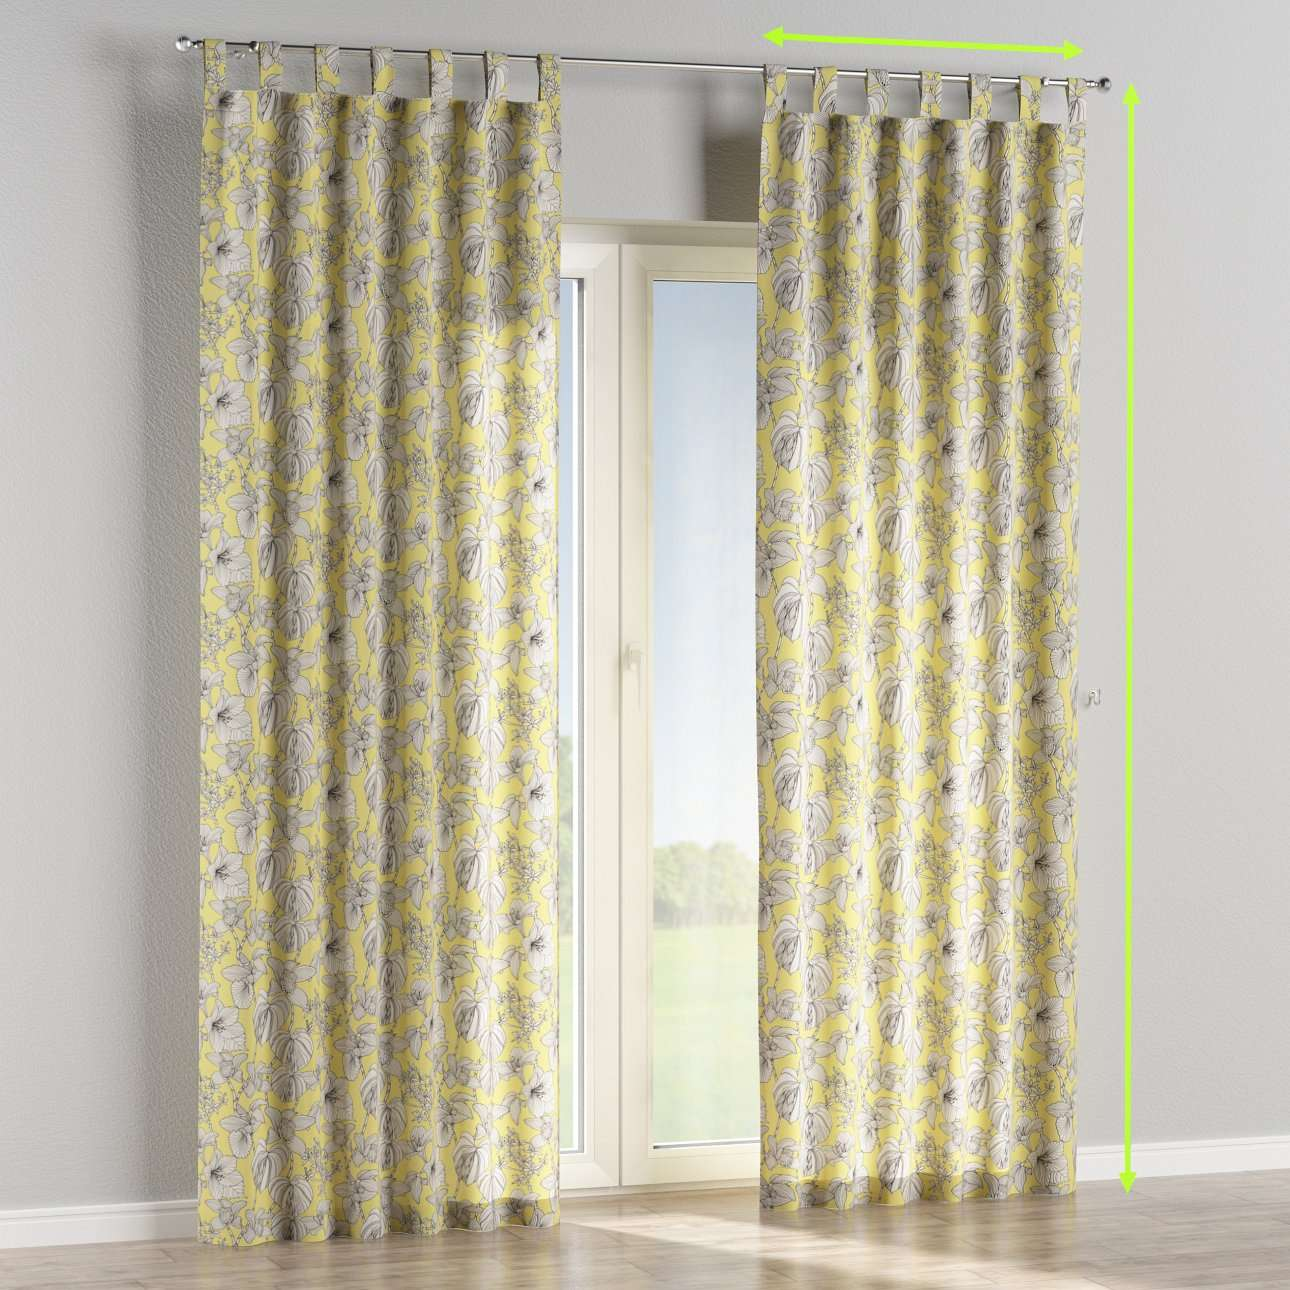 Tab top curtains in collection Brooklyn, fabric: 137-78